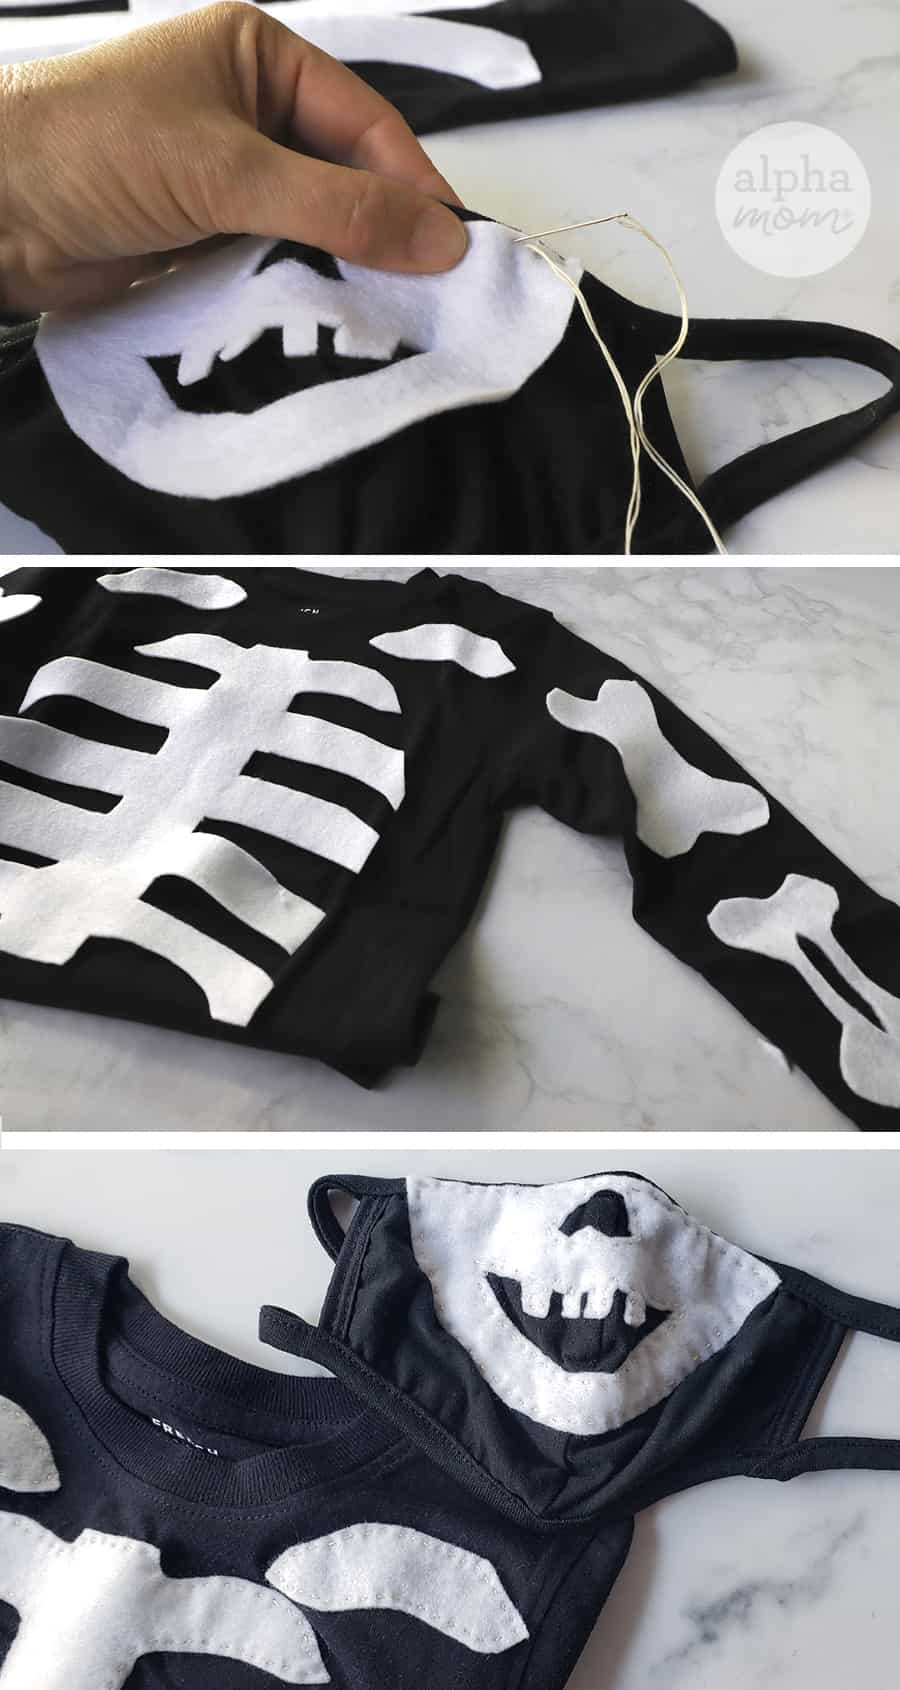 three photos showing close-up of felt being sewn onto homemade Halloween skeleton costume and face mask for COVID